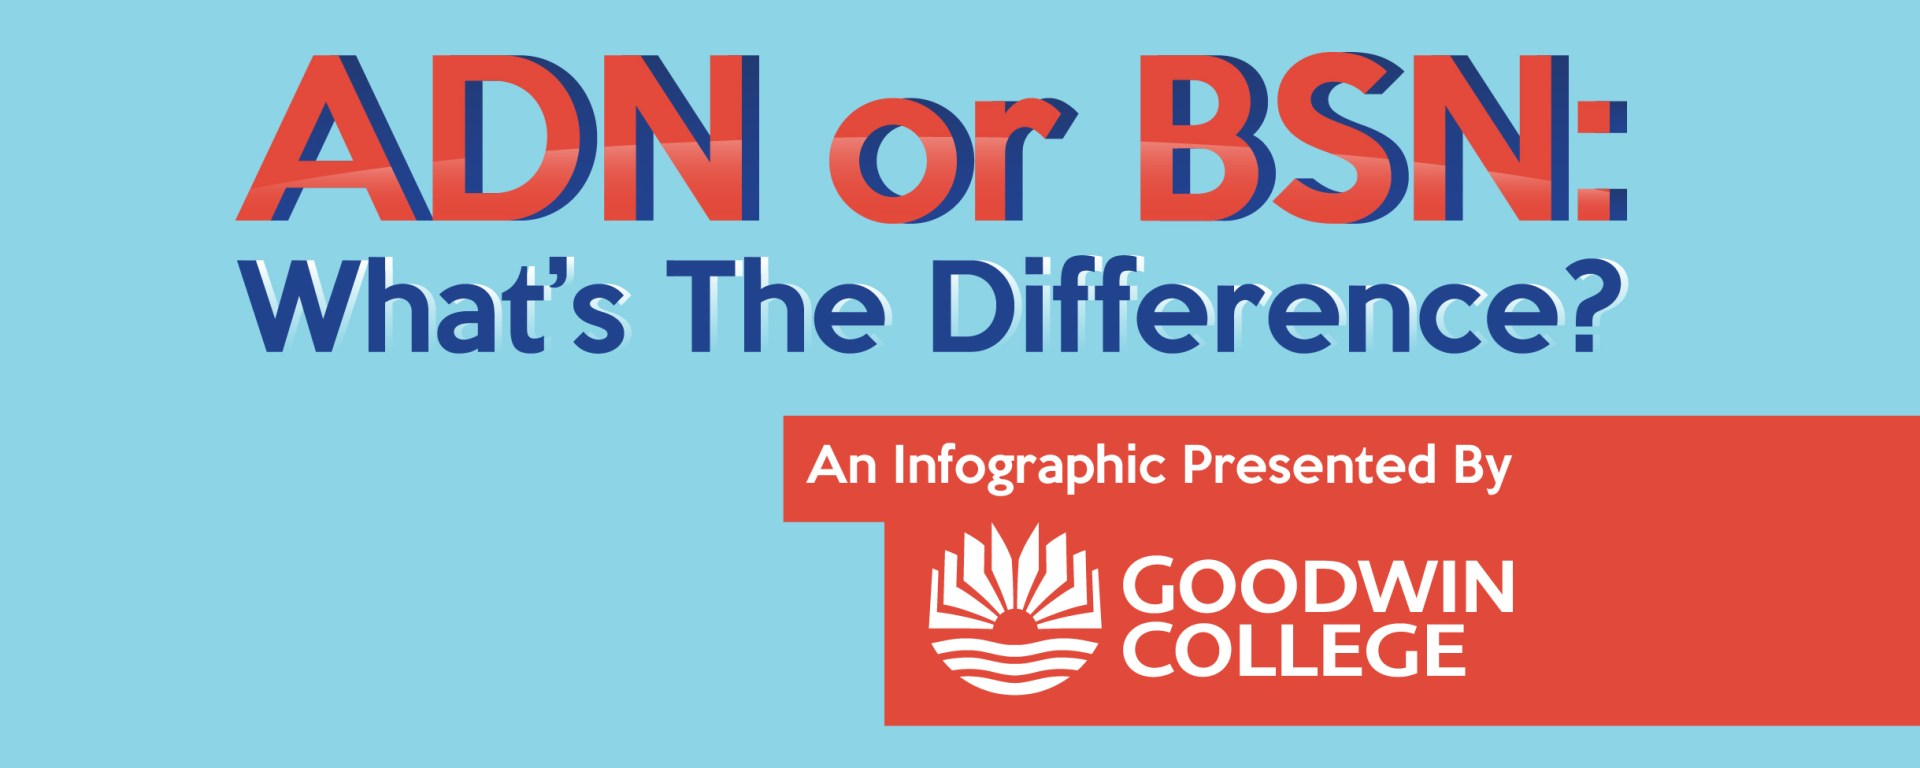 Adn Vs Bsn Infographic Goodwin College